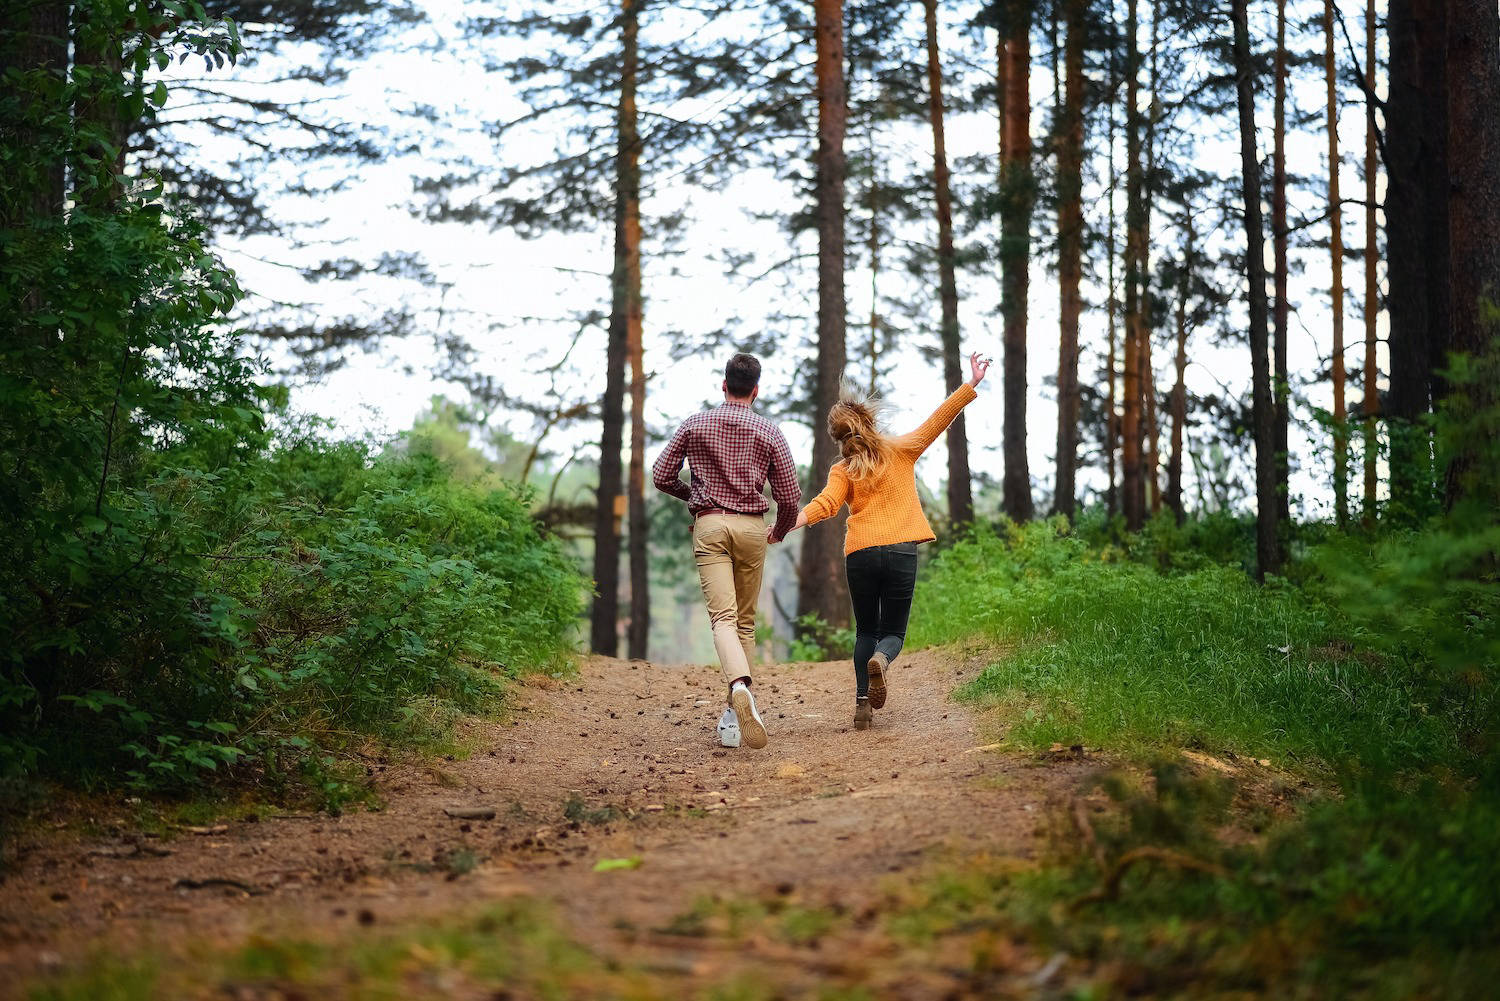 Couple skipping through the forest